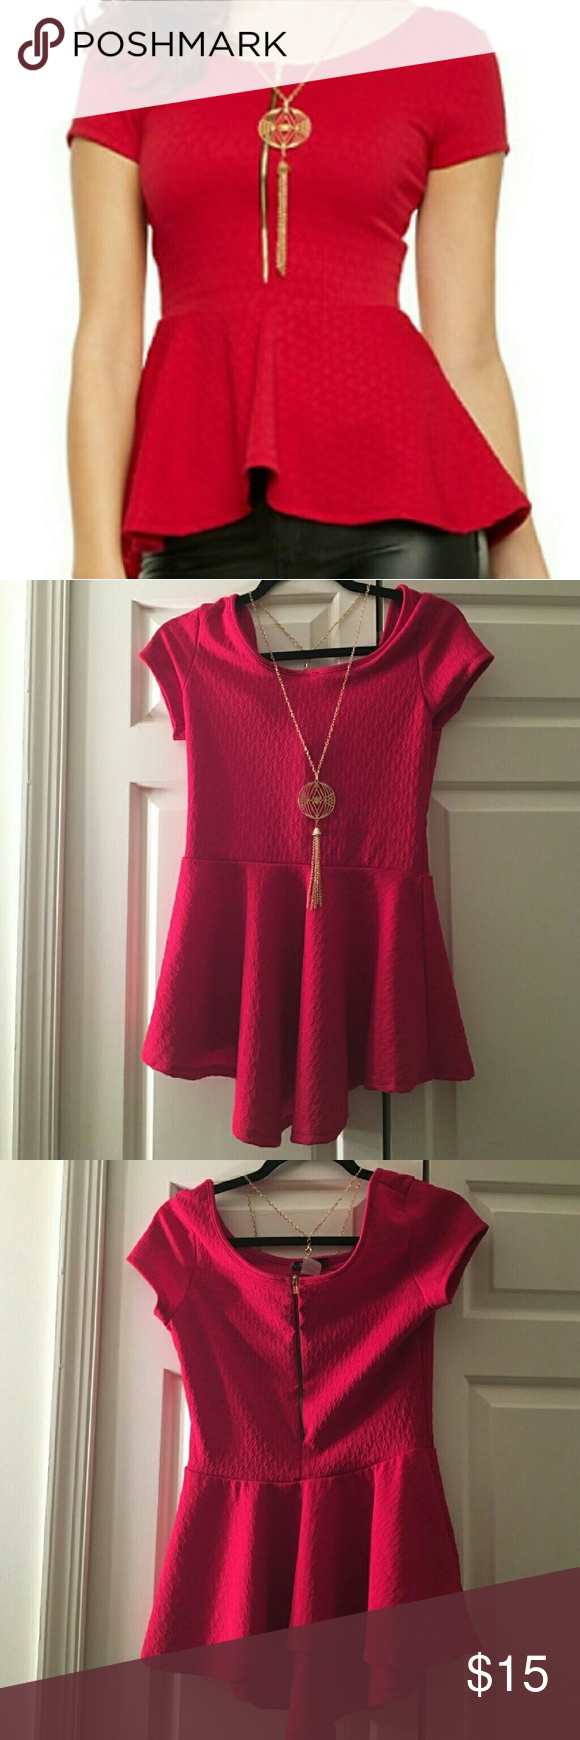 Beautiful Preplum! Size large but fits like a medium so it is listed as a medium. Has stretch to it. Smoke free home! Necklace comes with and is not attached to the actual blouse. It is a beautiful red color! The zipper is on the front and that look is definitely in style. Would look fabulous with some leggings and booties and great for a night out on the town or a date. Tops